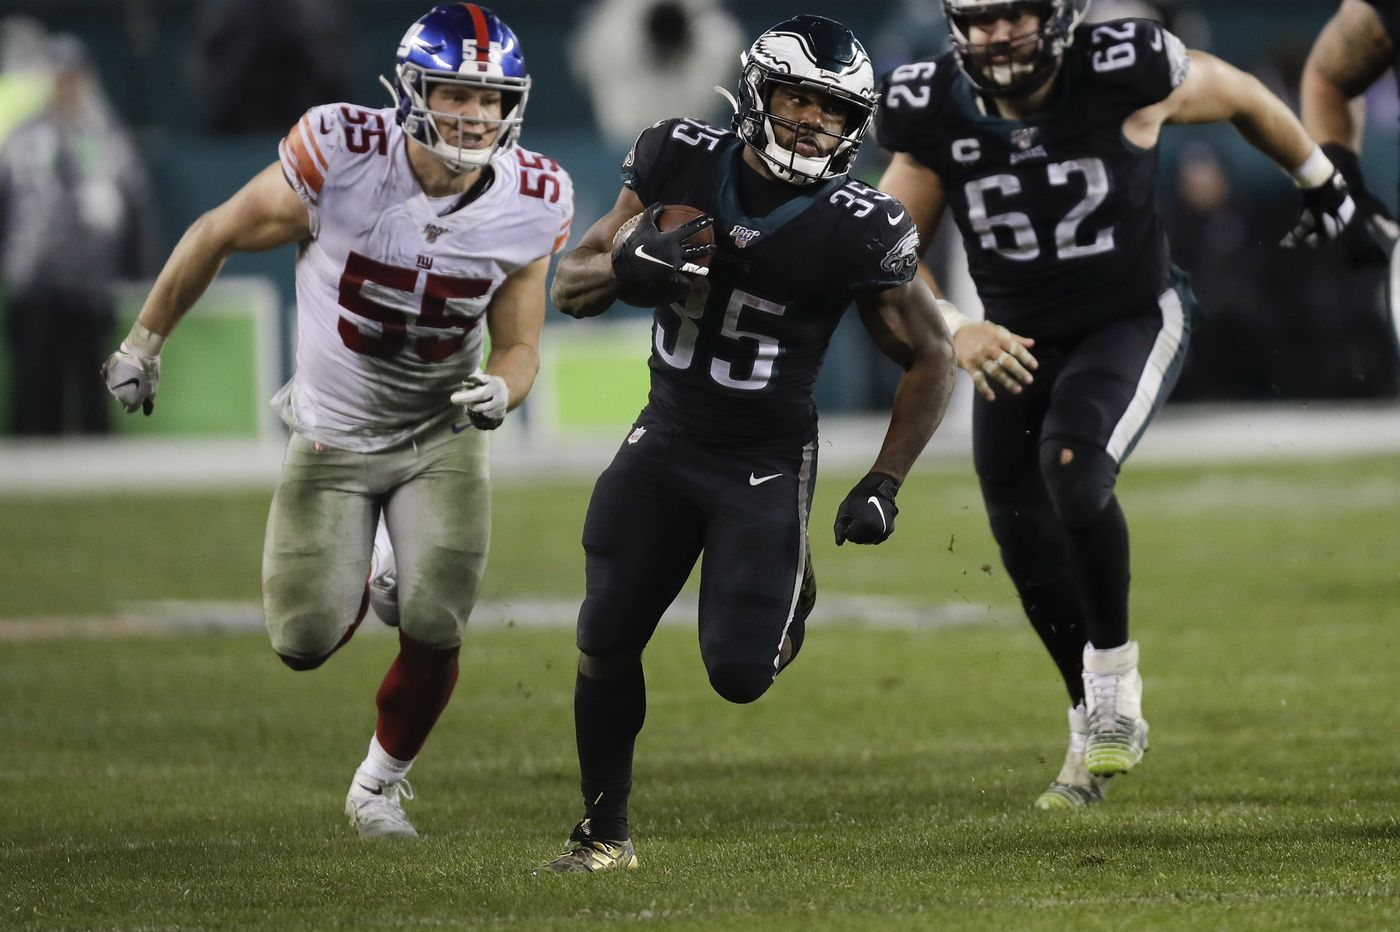 Boston Scott is Eagles' unheralded hero in 23-17 overtime win over Giants | Jeff McLane